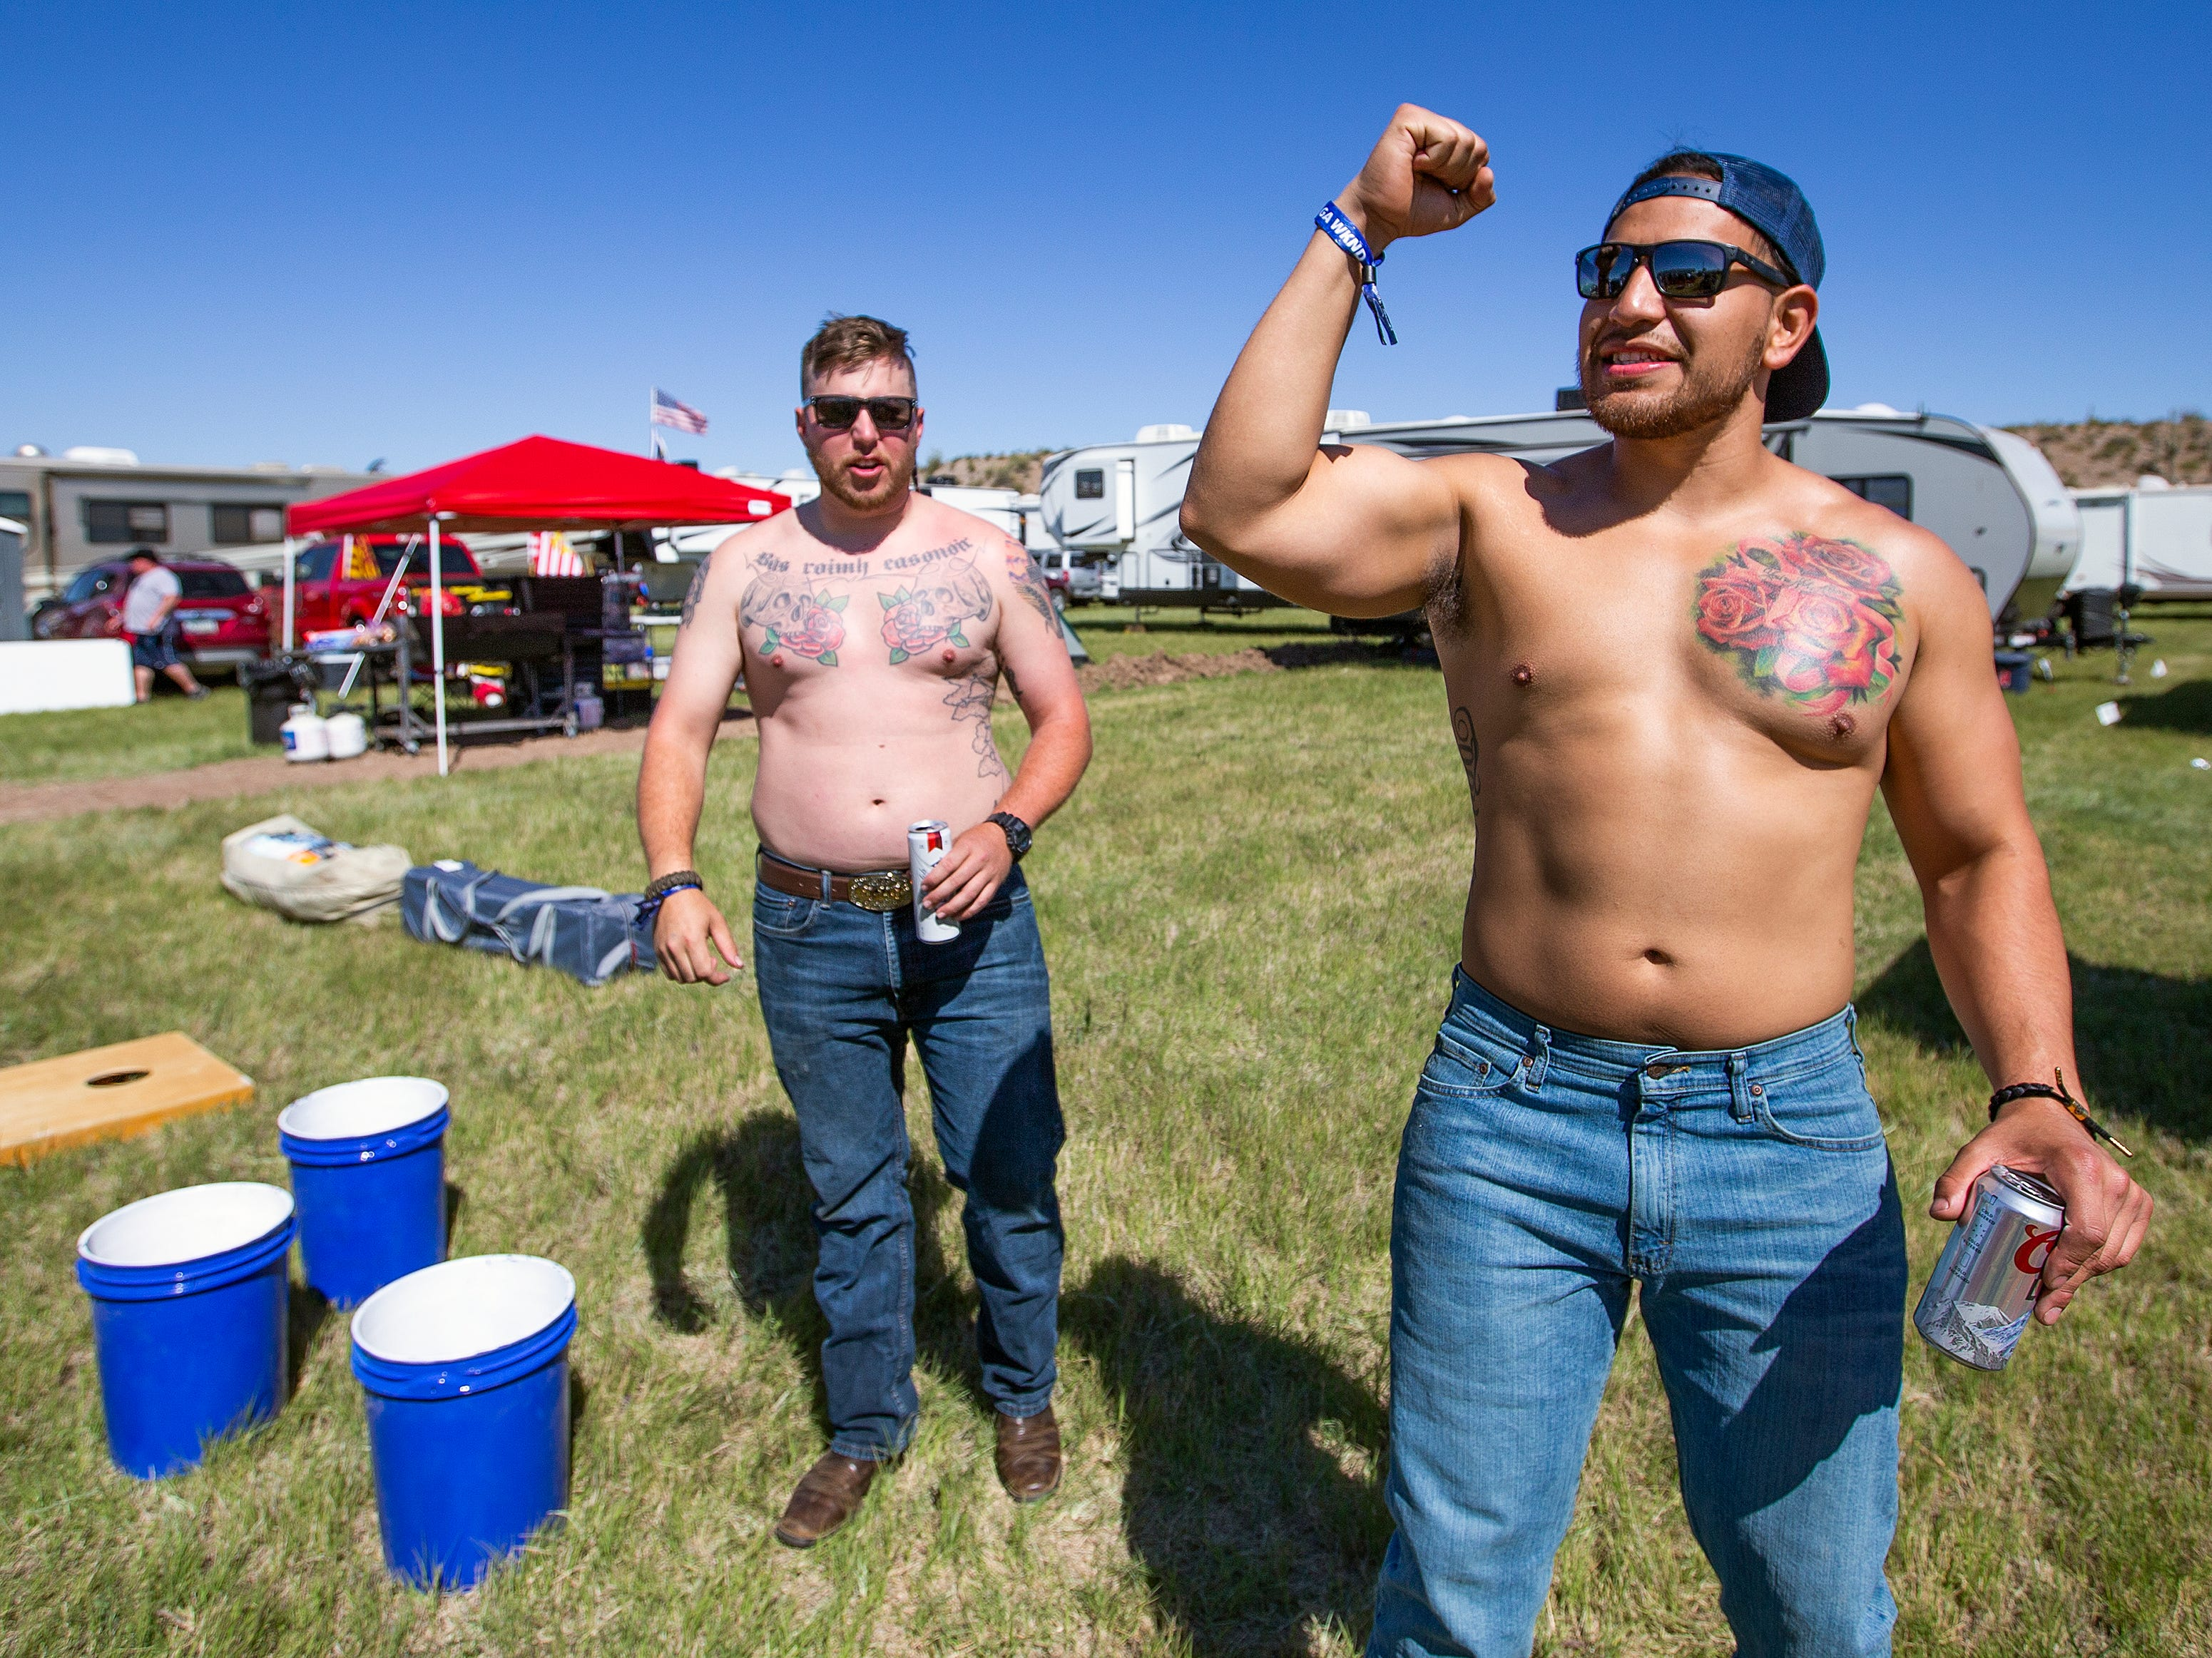 Kyle Billingsley (left), 28, and  Jose Munoz, 28, both from Phoenix, play bucket pong in their camp at the Country Thunder Arizona 2019 music festival April 11, 2019.